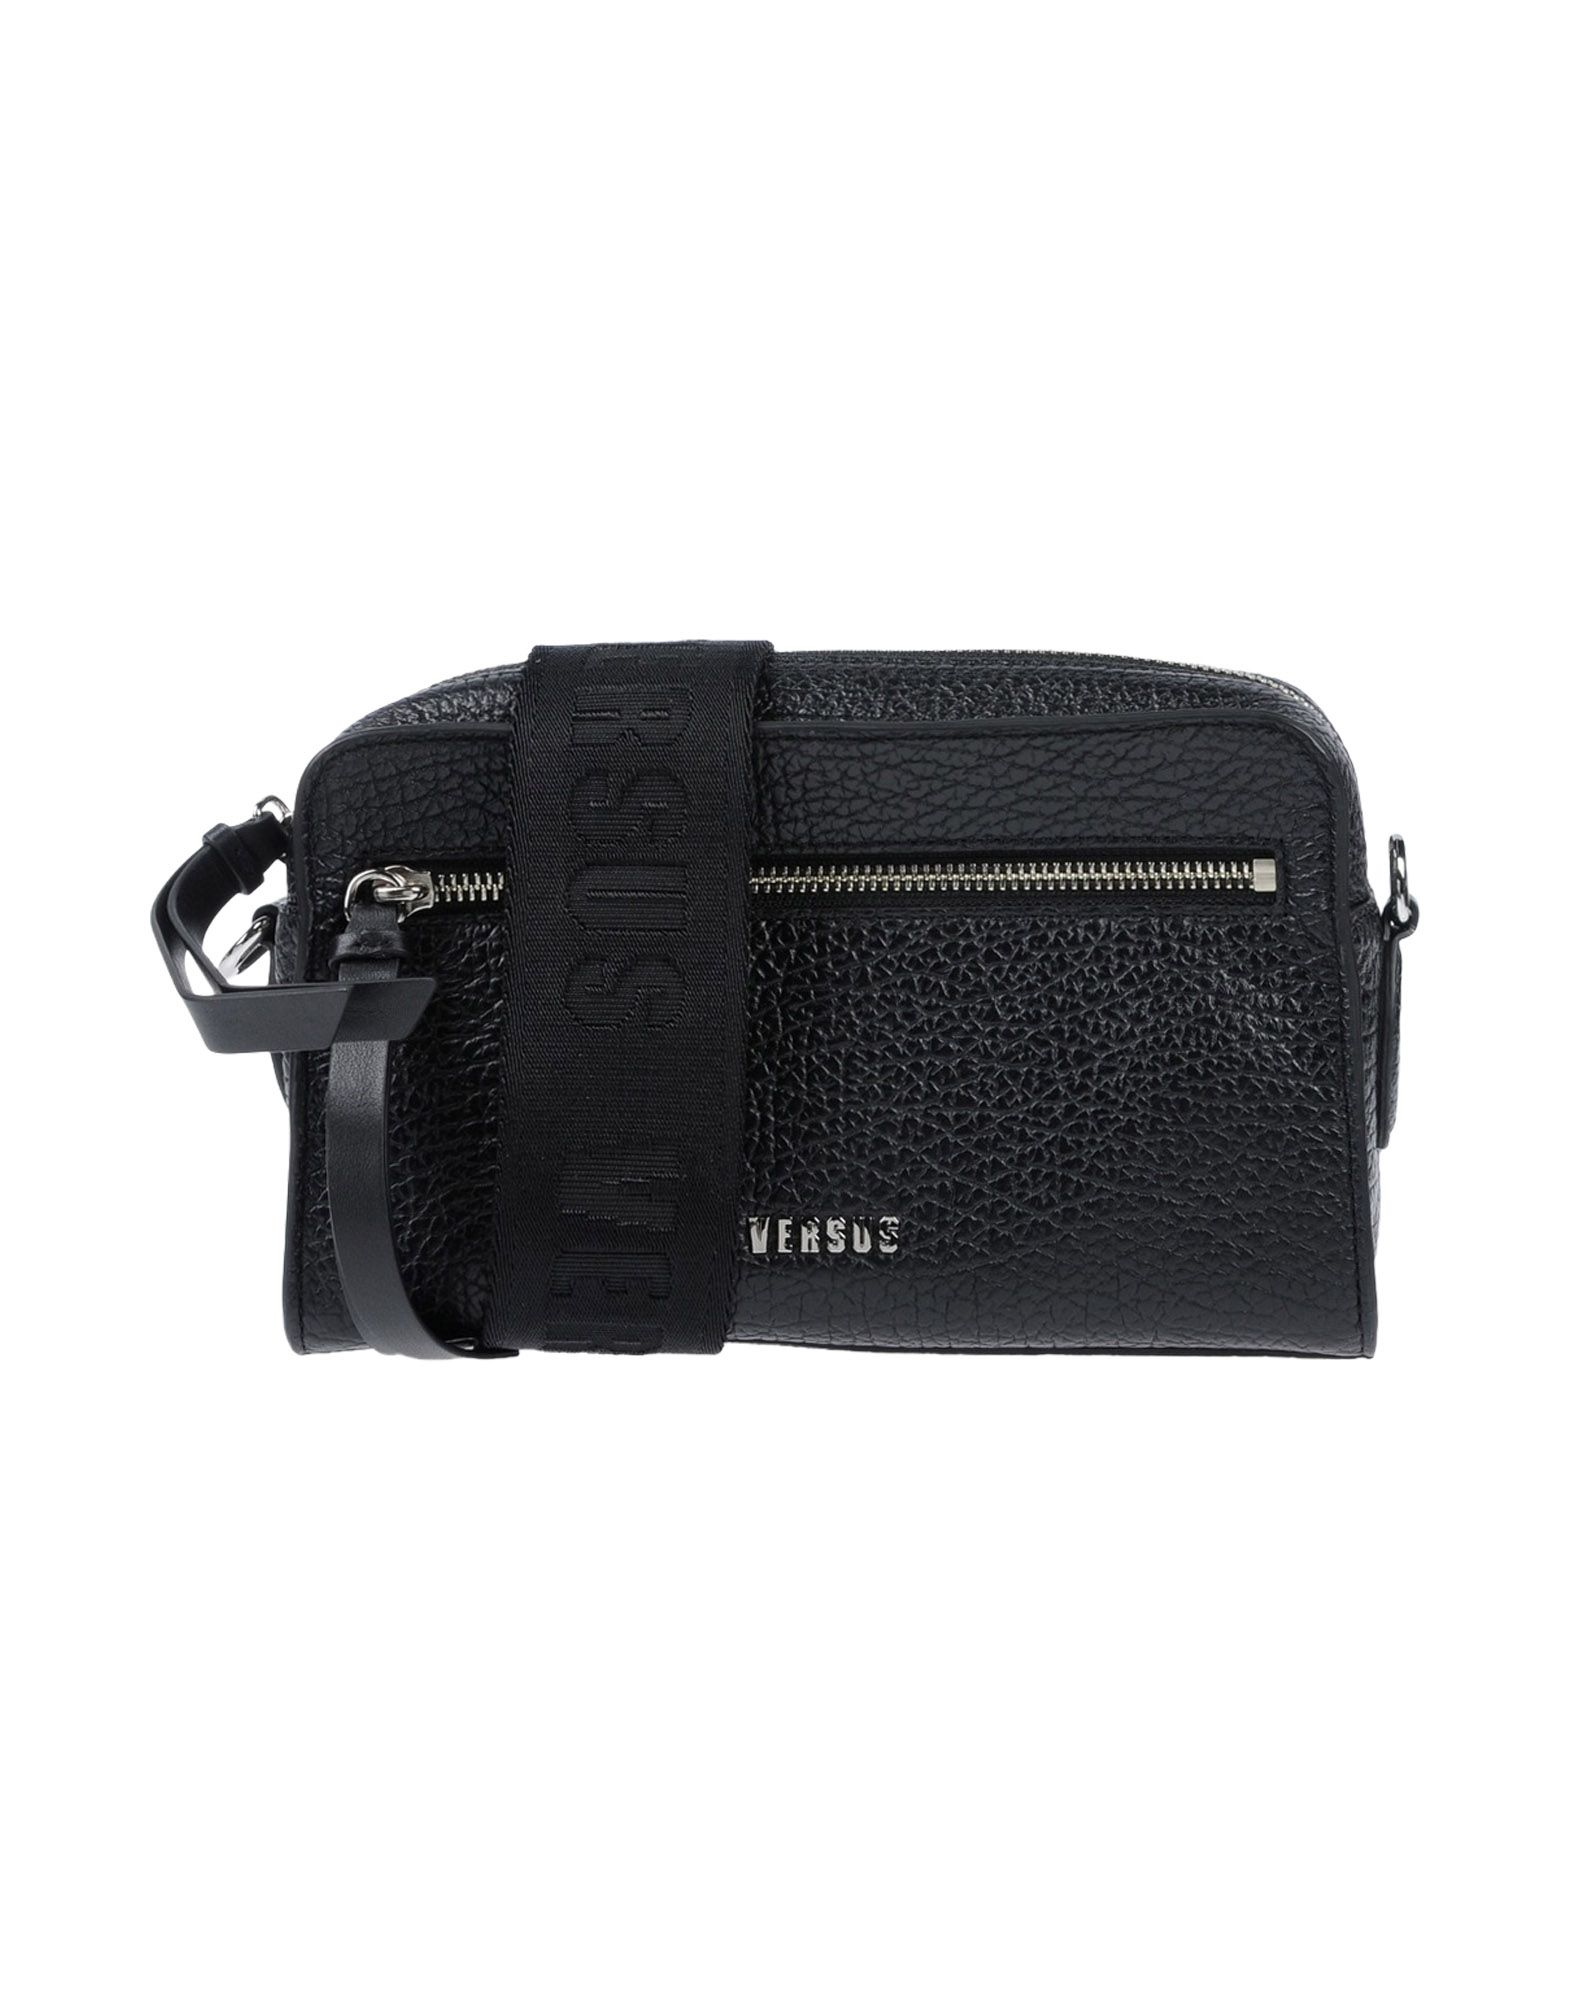 742ec160cc Versus Versace Cross-Body Bags - Women Versus Versace Cross-Body ...